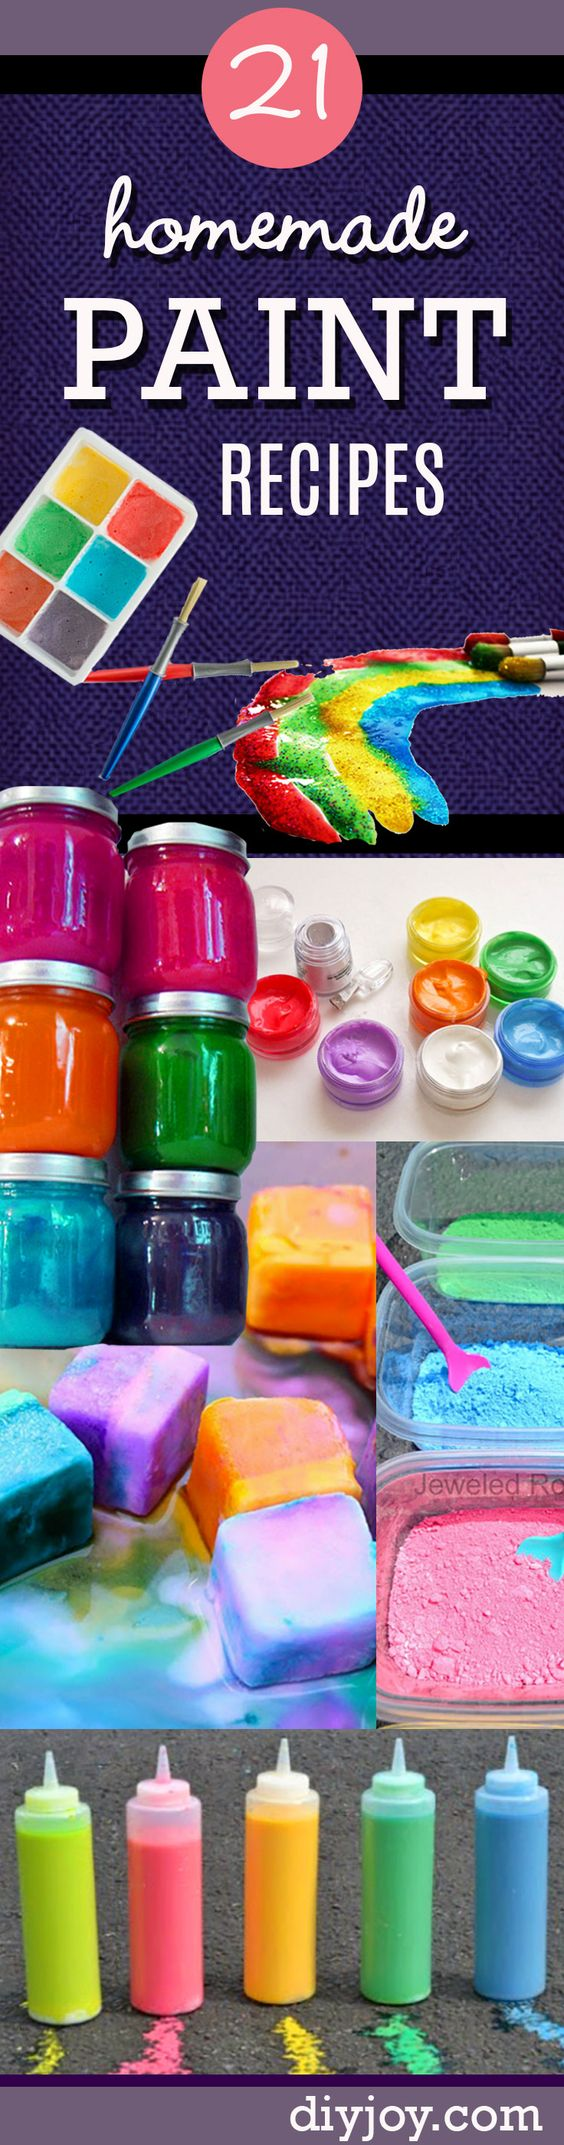 21 easy diy paint recipes your kids will go crazy for for How to make simple crafts at home